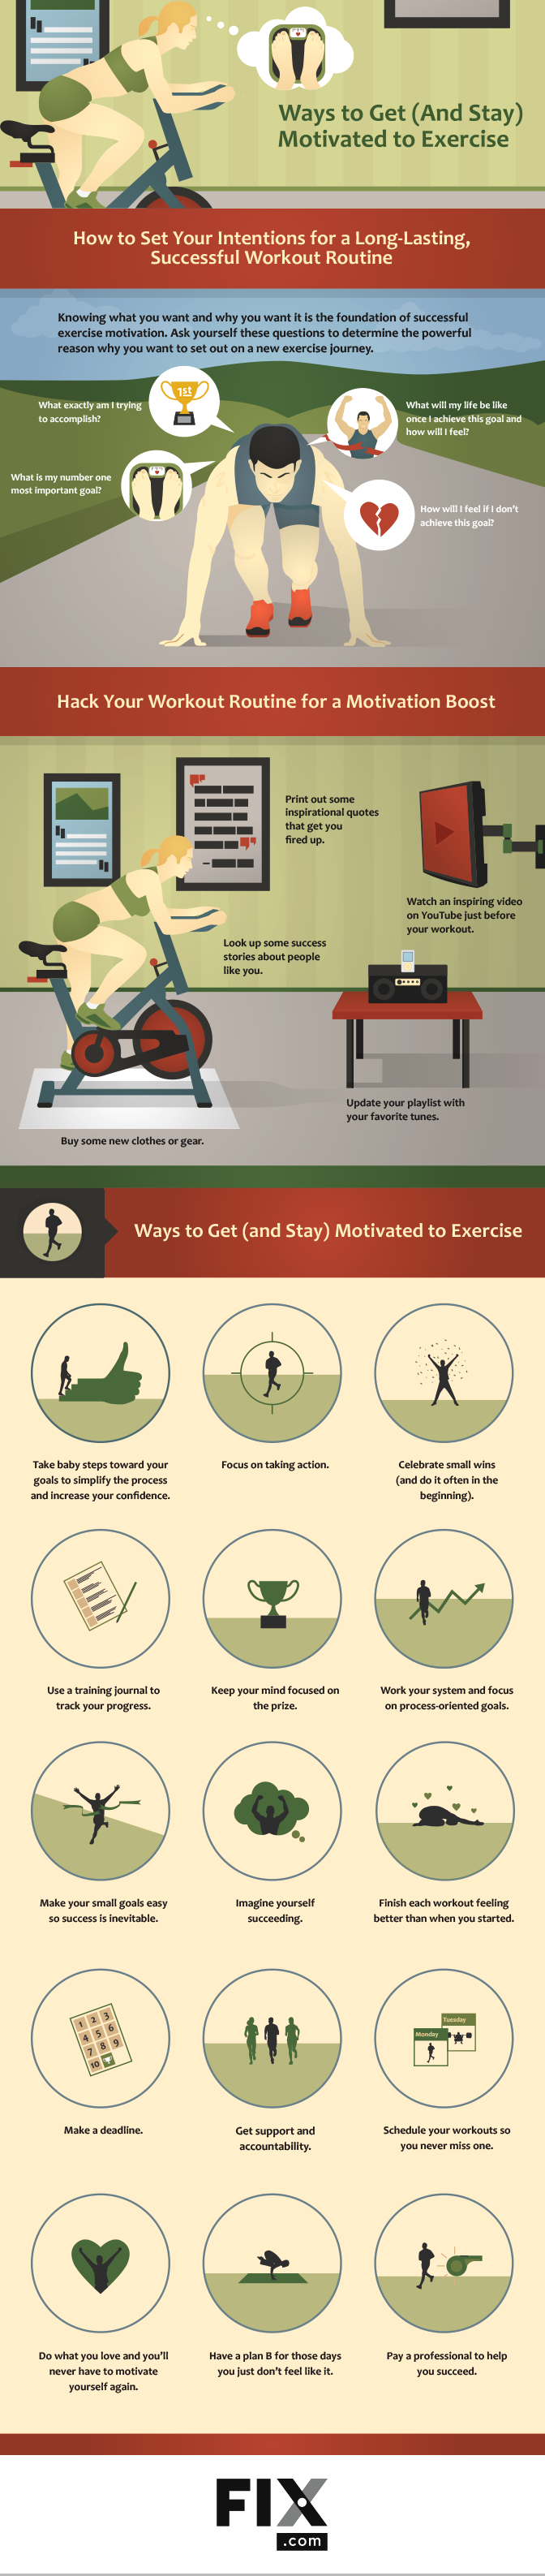 18 Ways to Get and Stay Motivated to Exercise infographic